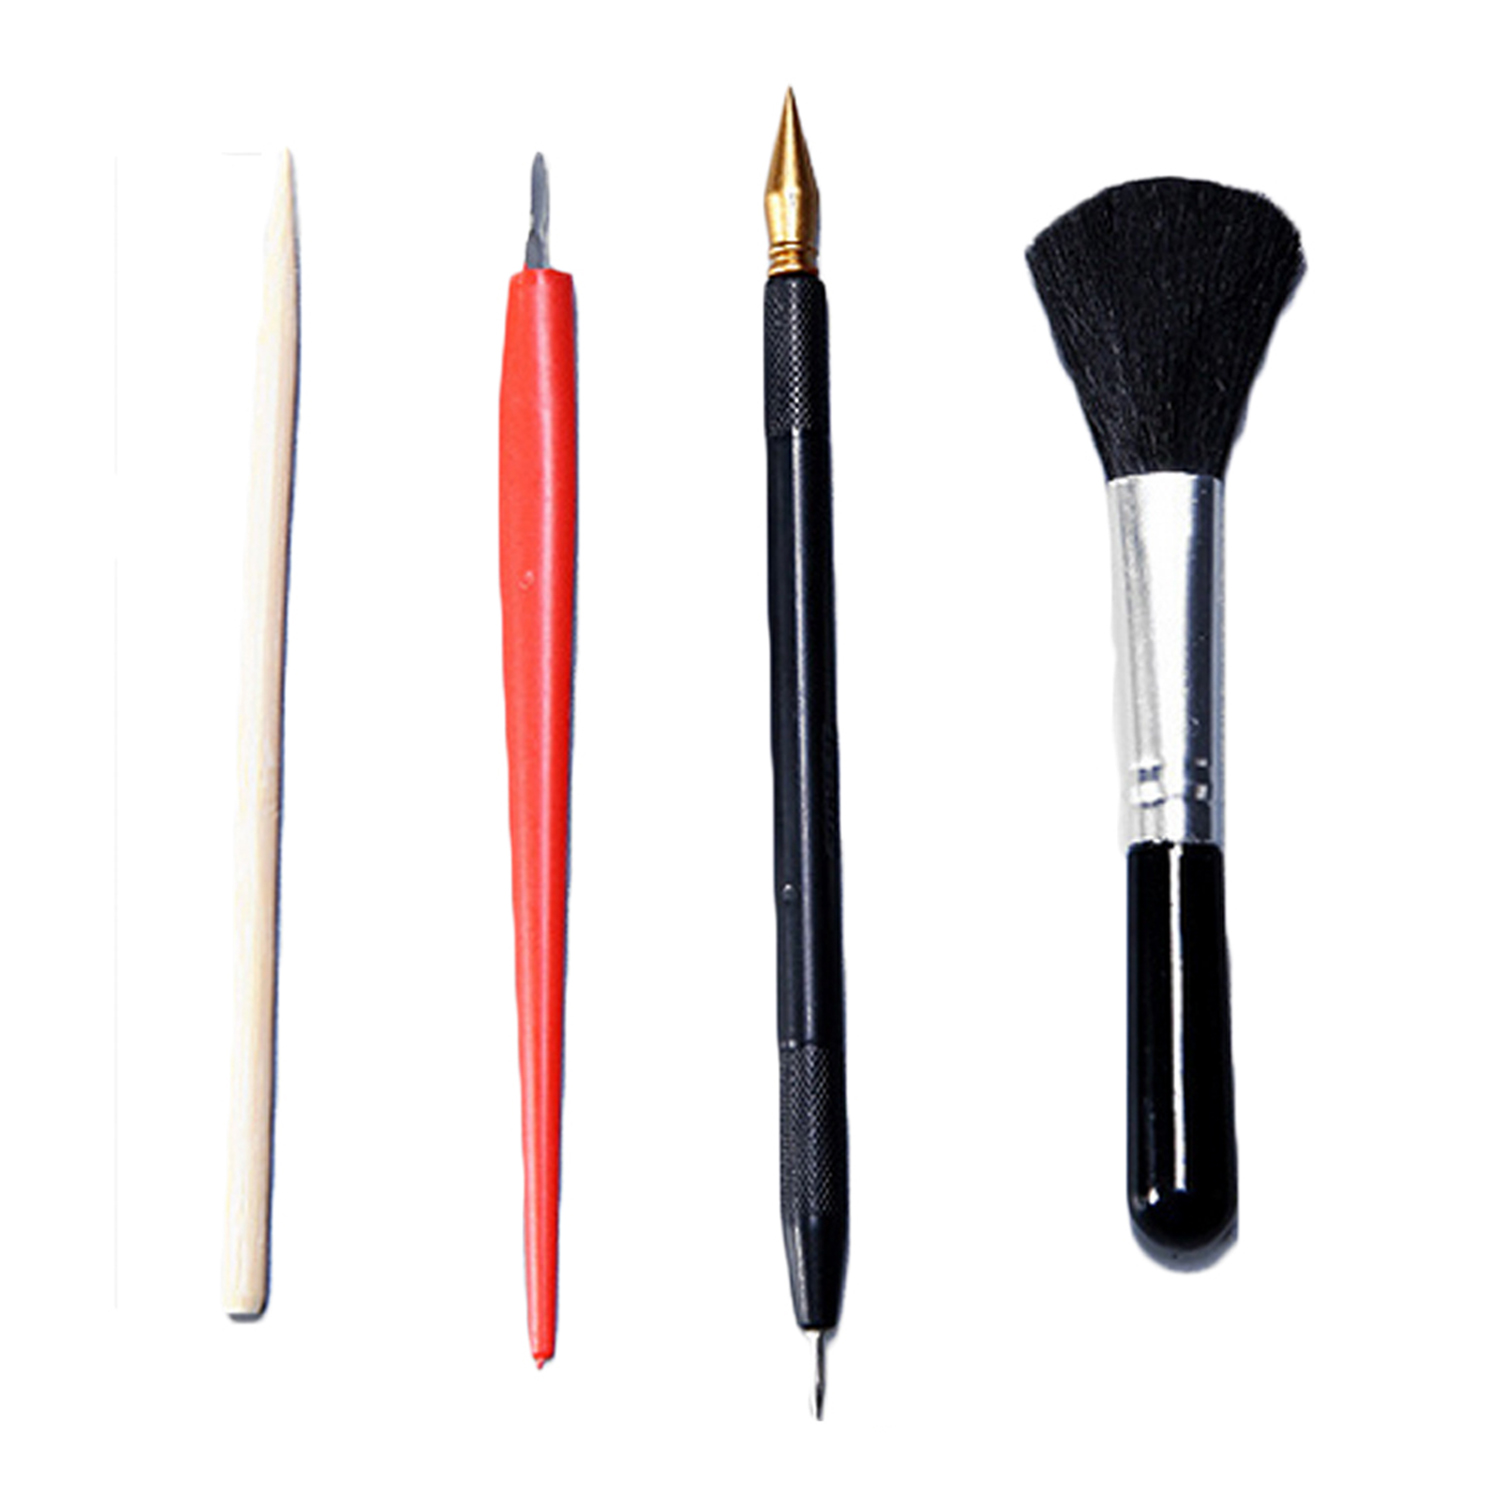 4 Magic Scratch Art Painting Tool Drawing Scraping Set With Stick Scraper Pen Black Brush For DIY Painting Crafts Toys